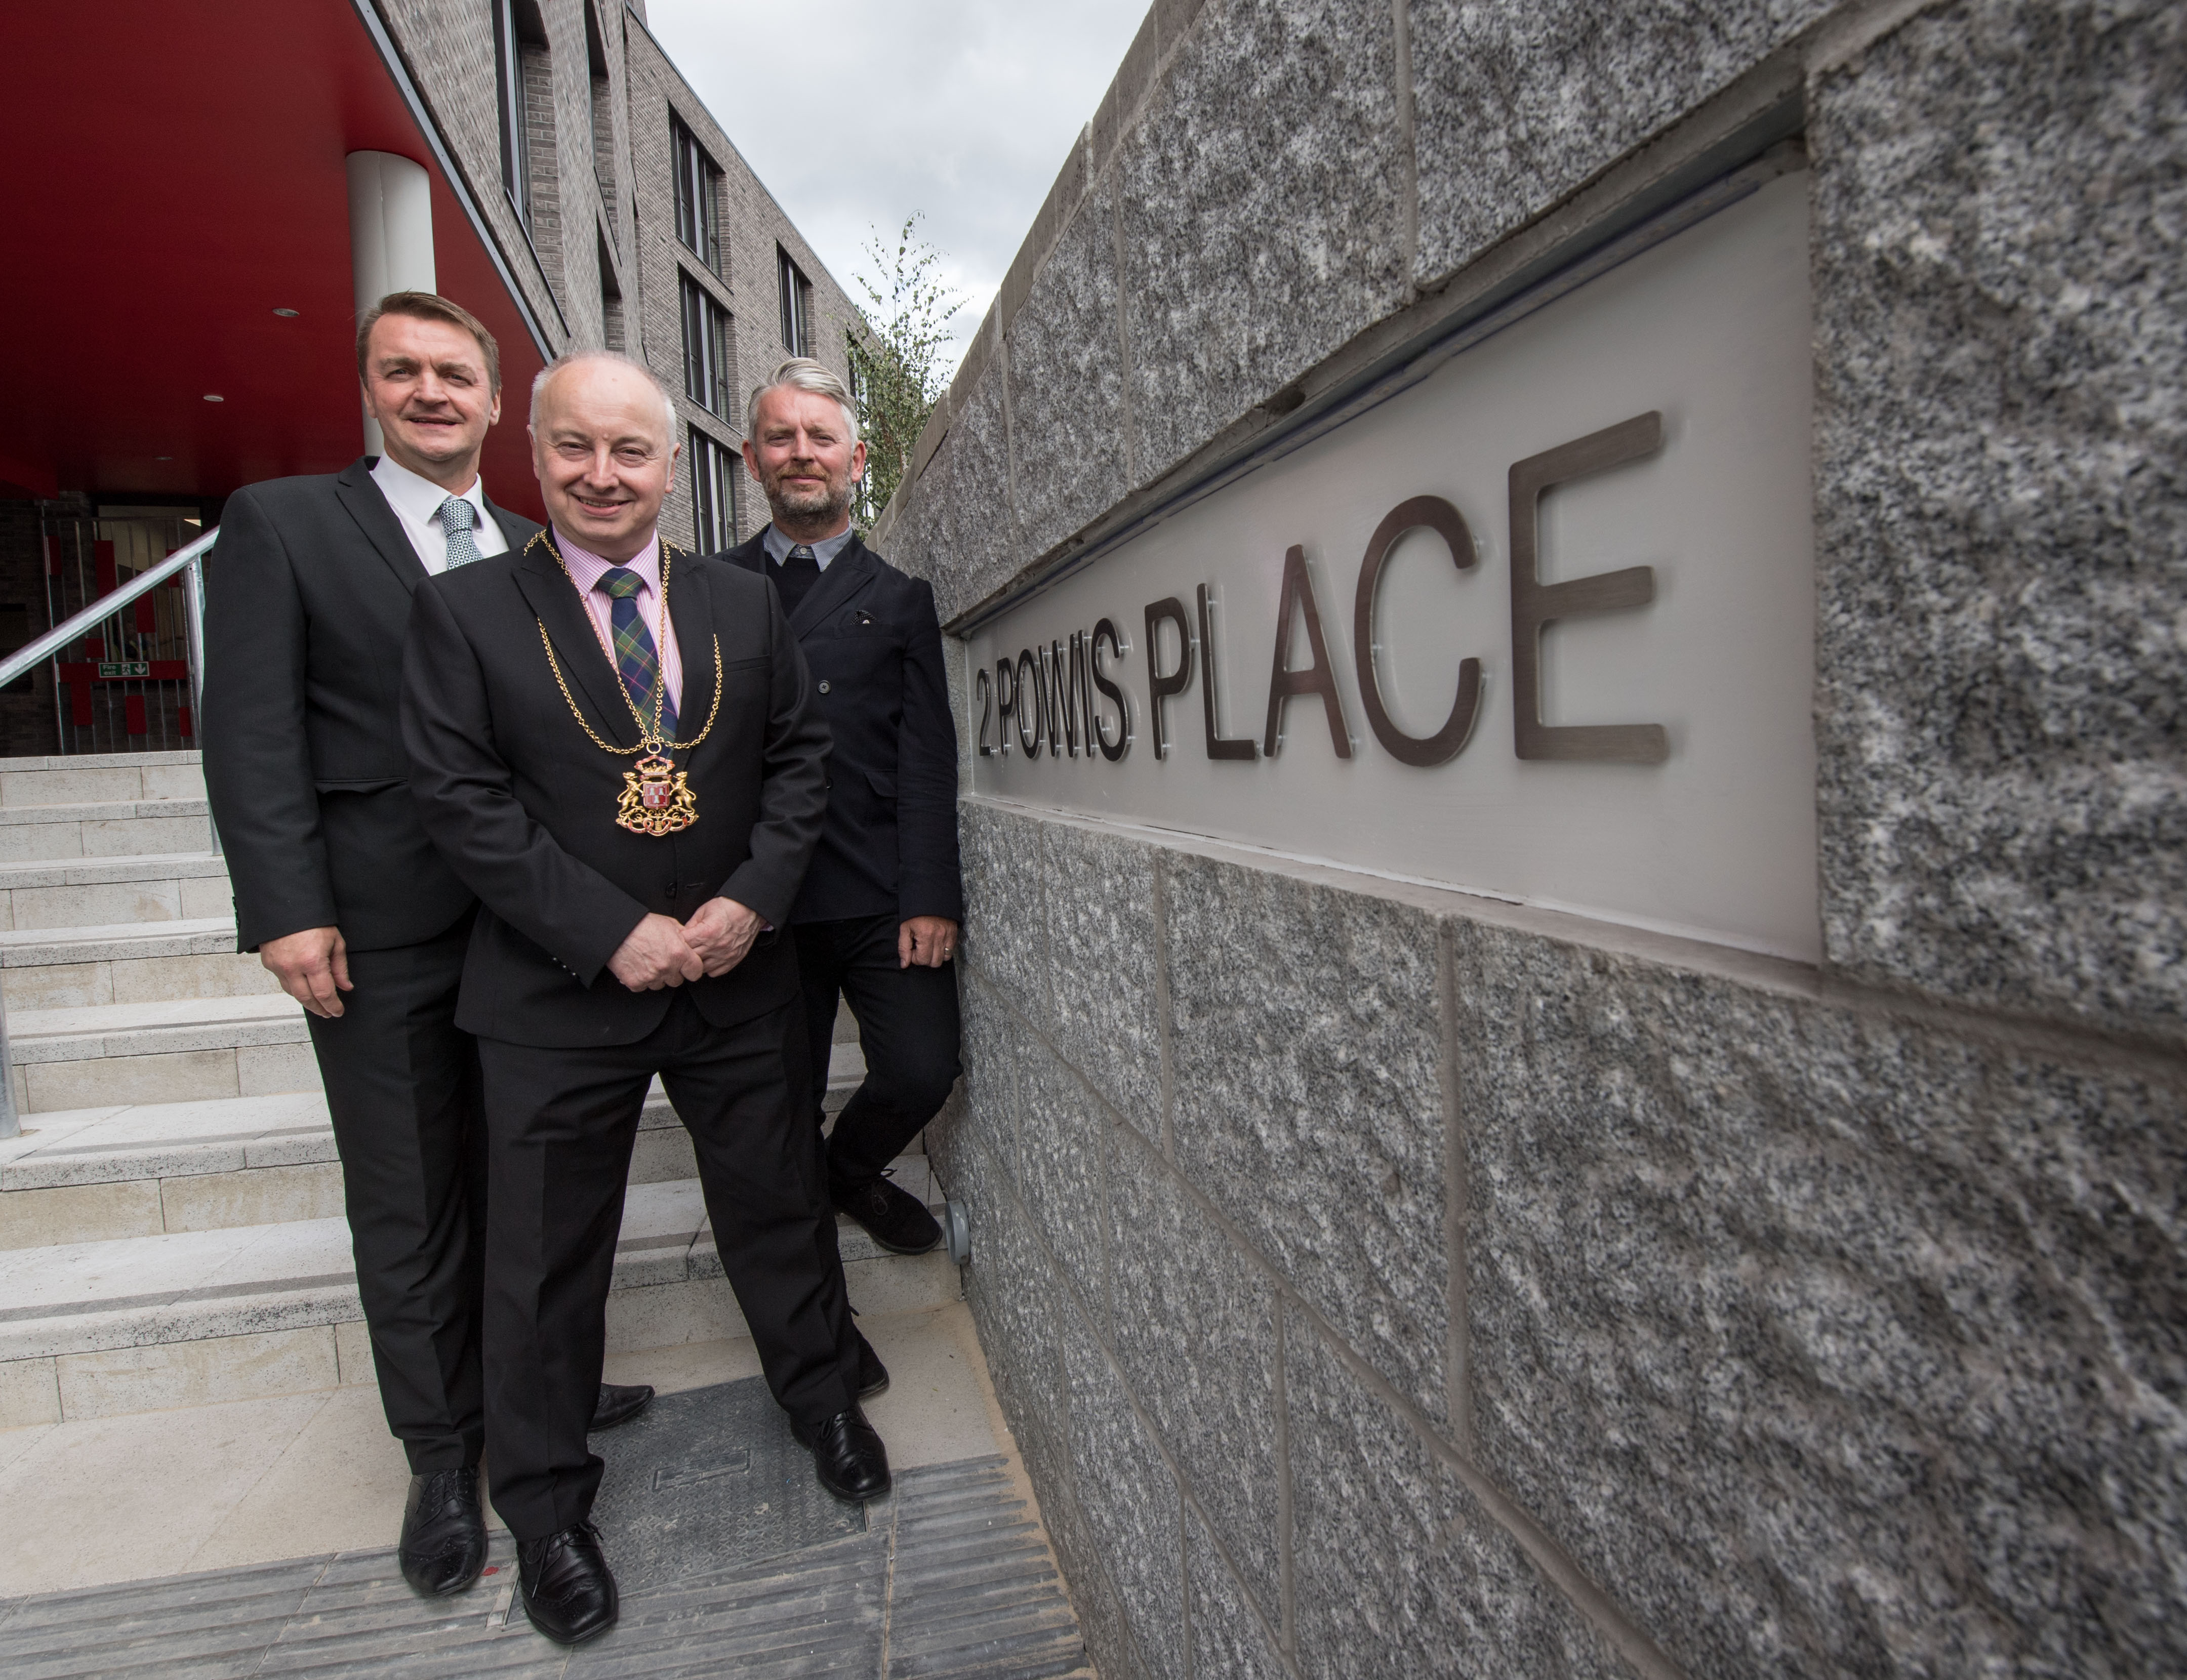 Aberdeen, Thursday 1st September 2016 New students move in as £11m development opens at Powis Place Sean O'Callaghan, area operations director at Kier Construction Scotland, Lord Provost George Adam and Alumno Developments Managing Director David Campbell.   Picture by Michal Wachucik / Abermedia